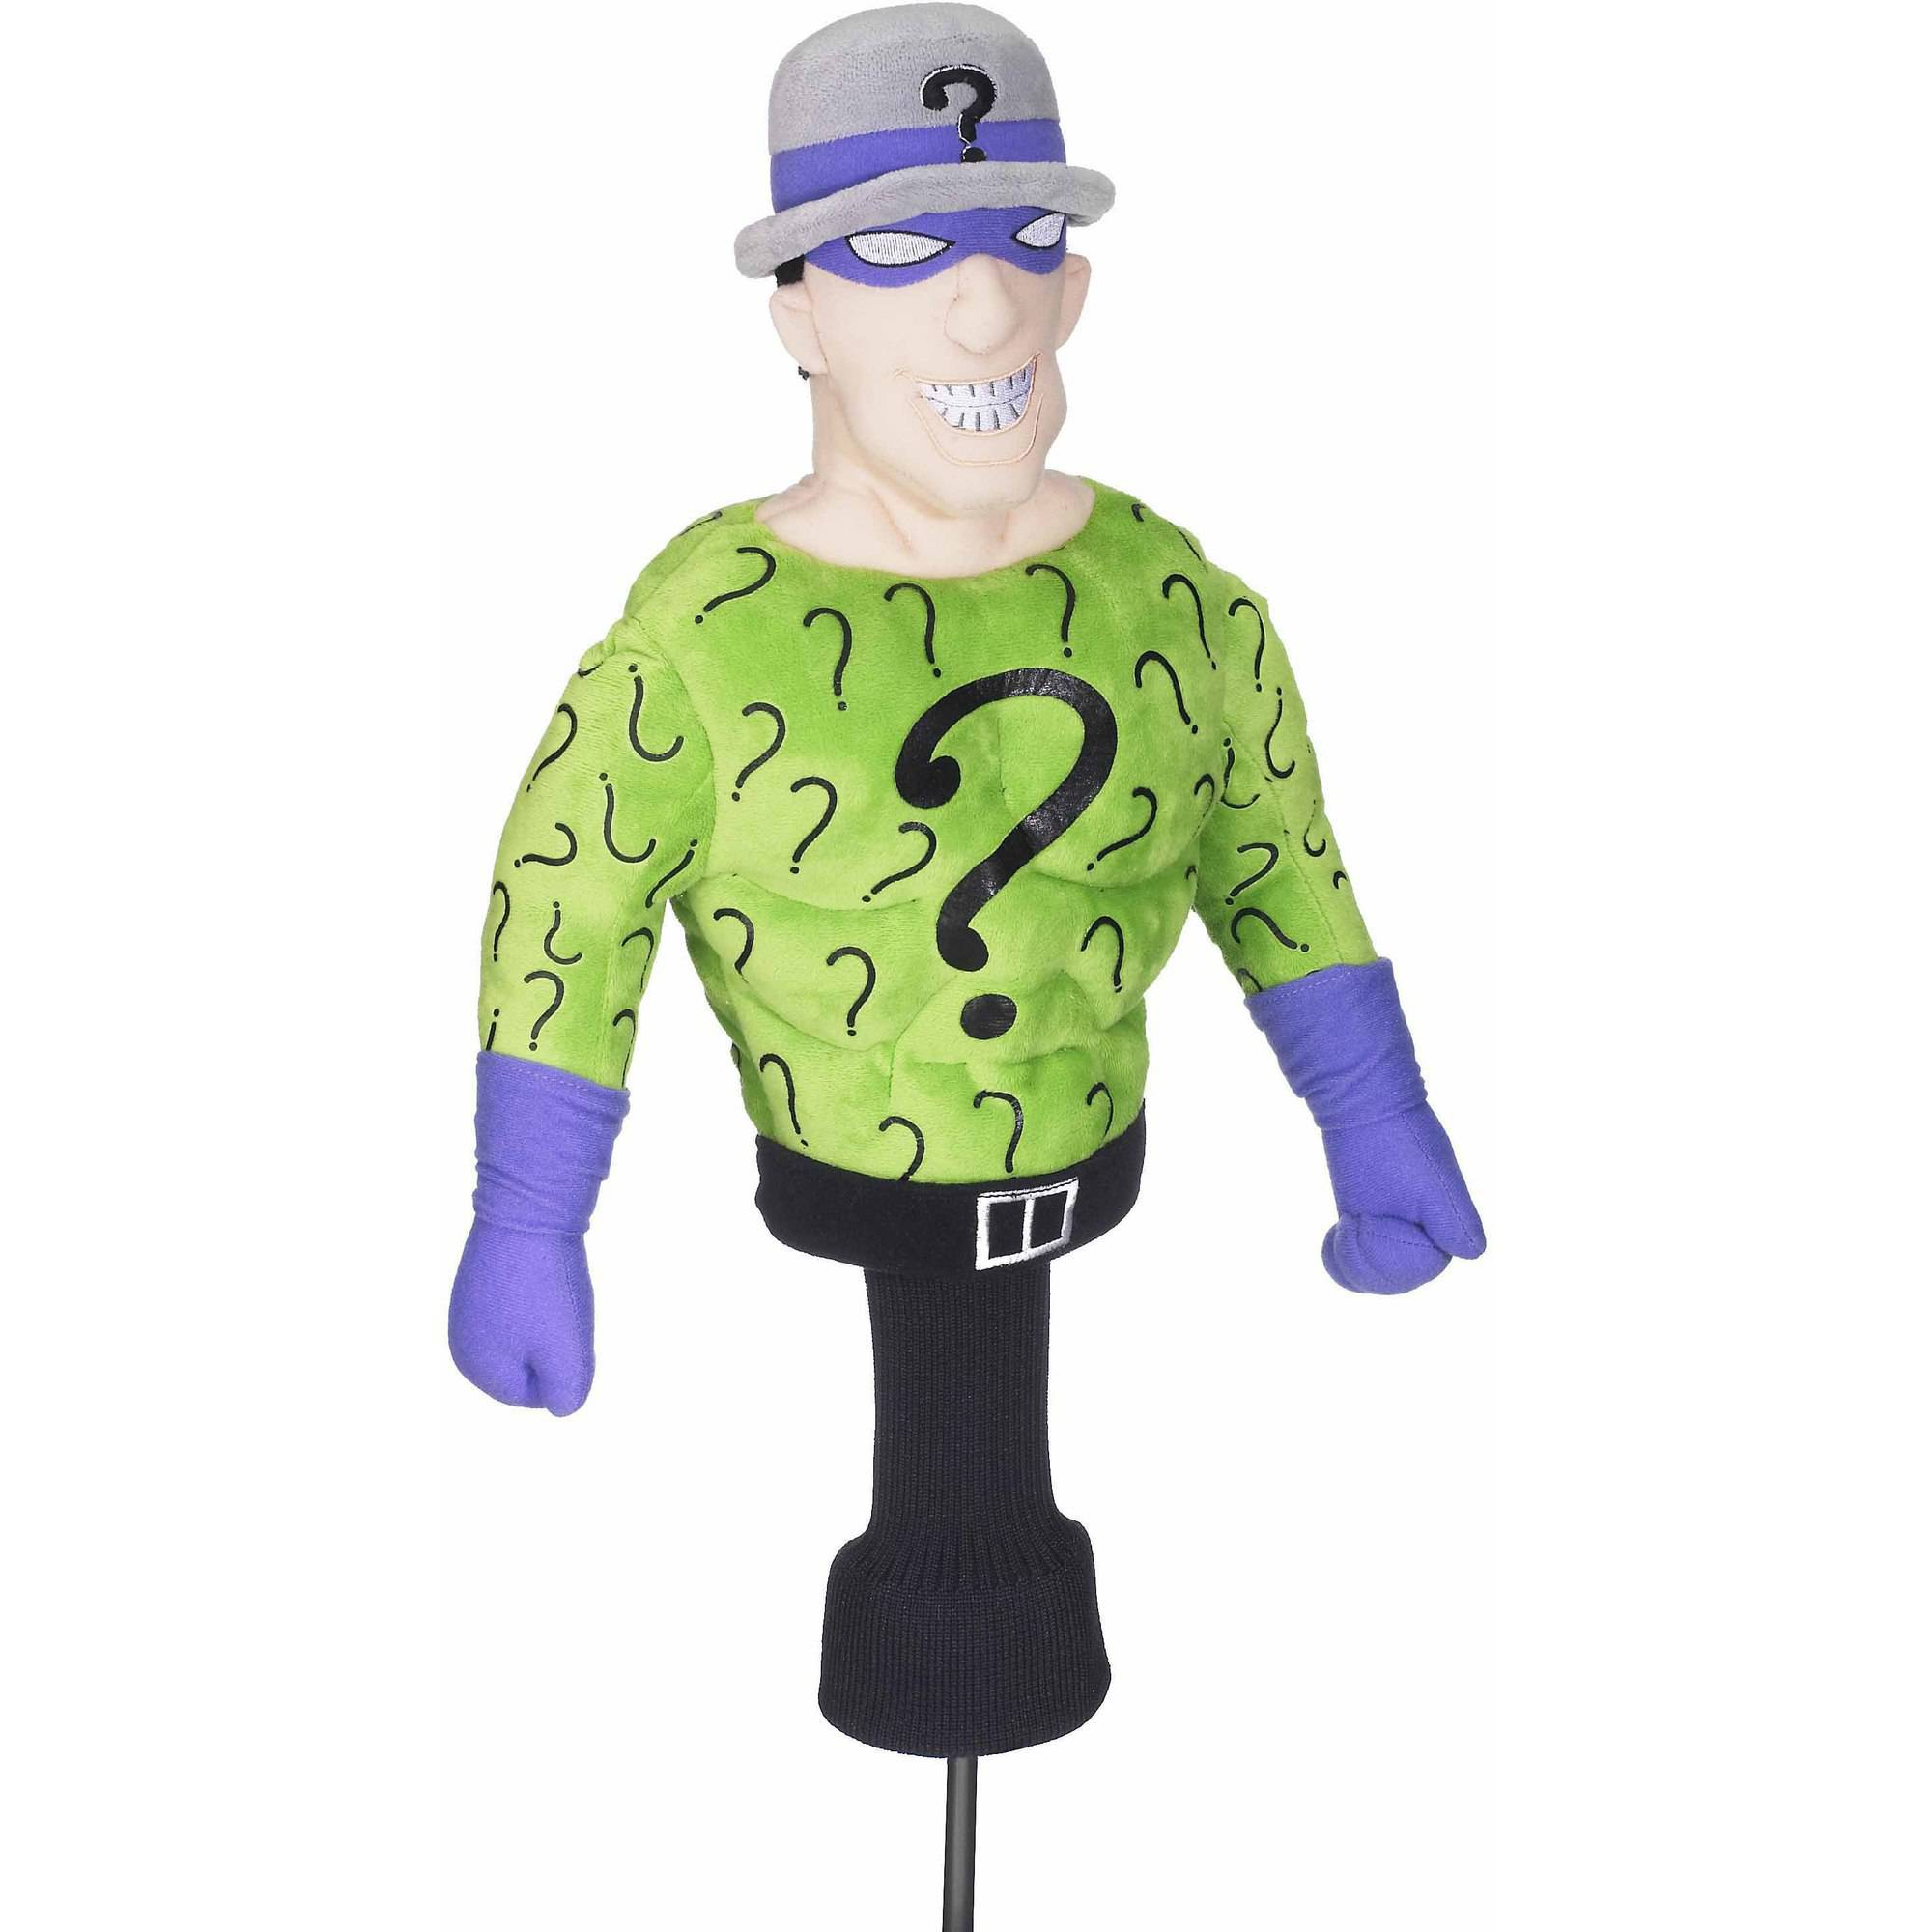 Creative Covers For Golf Riddler Driver Headcover